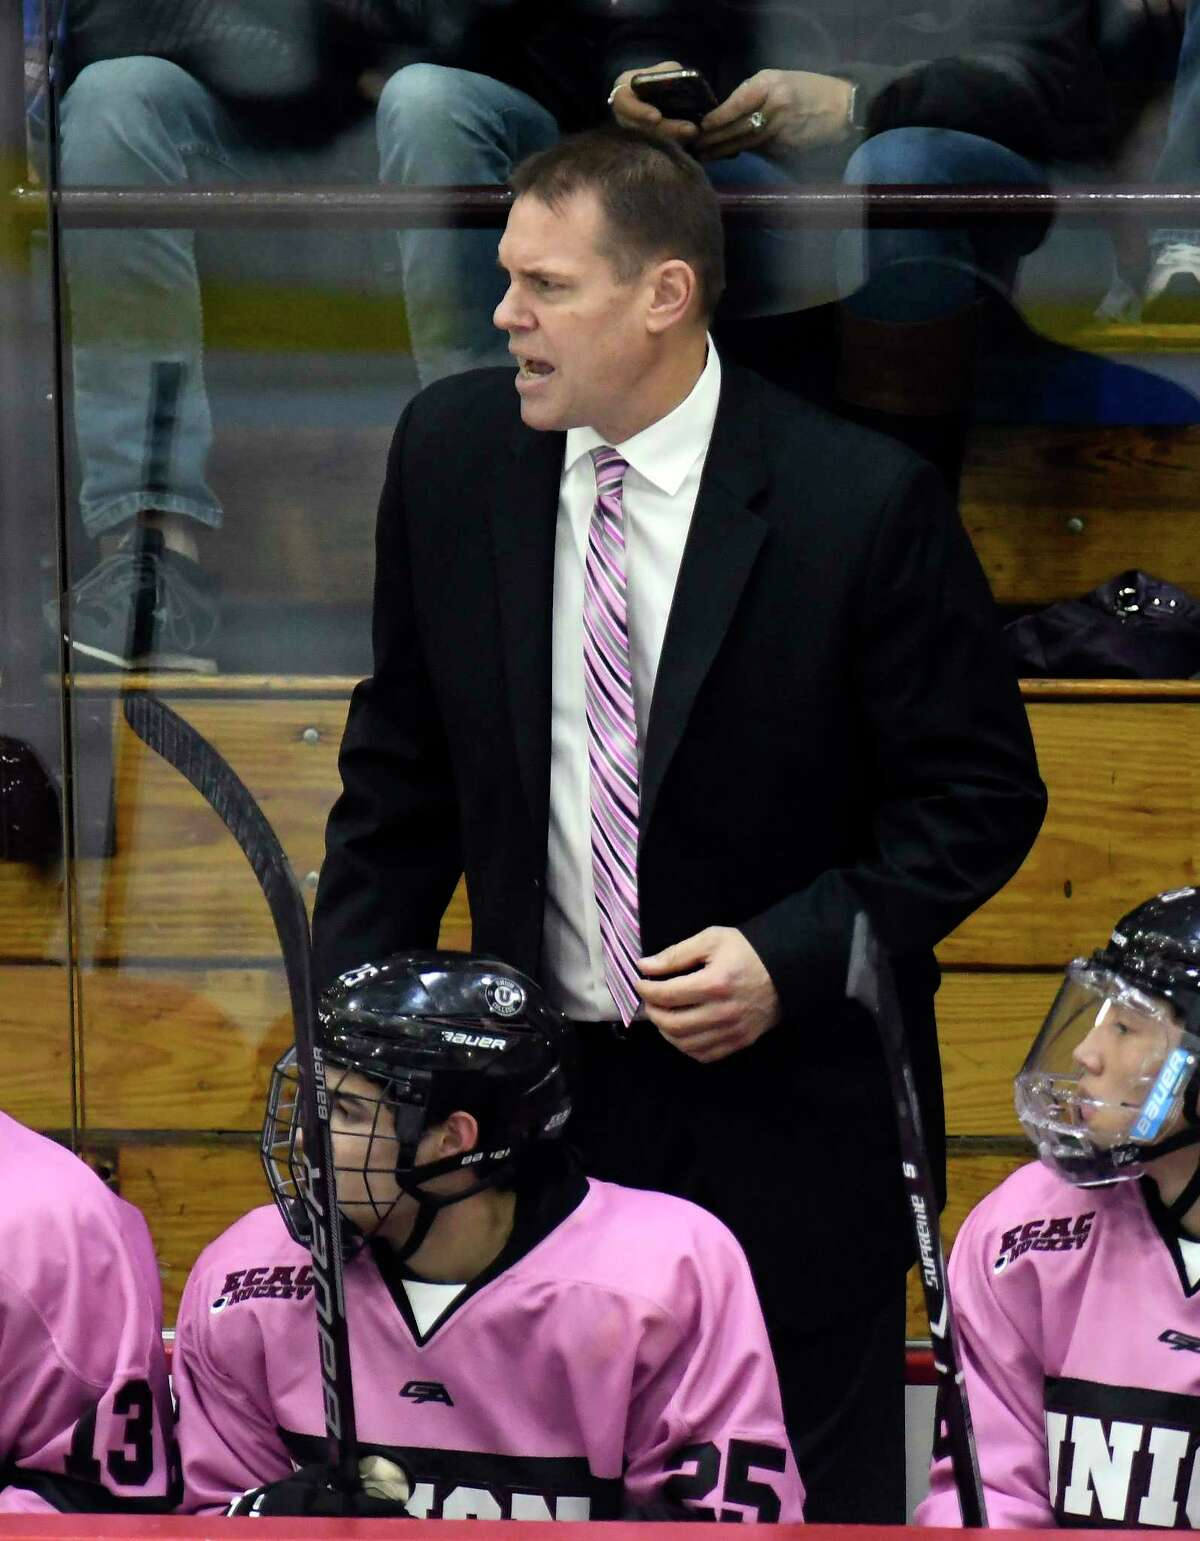 Union Dutchmen head coach Rick Bennet talks to his players during the second period of an NCAA college hockey game against the Rensselaer Engineers Friday, Oct. 27, 2017, in Schenectady, N.Y., (Hans Pennink / Special to the Times Union) ORG XMIT: HP107